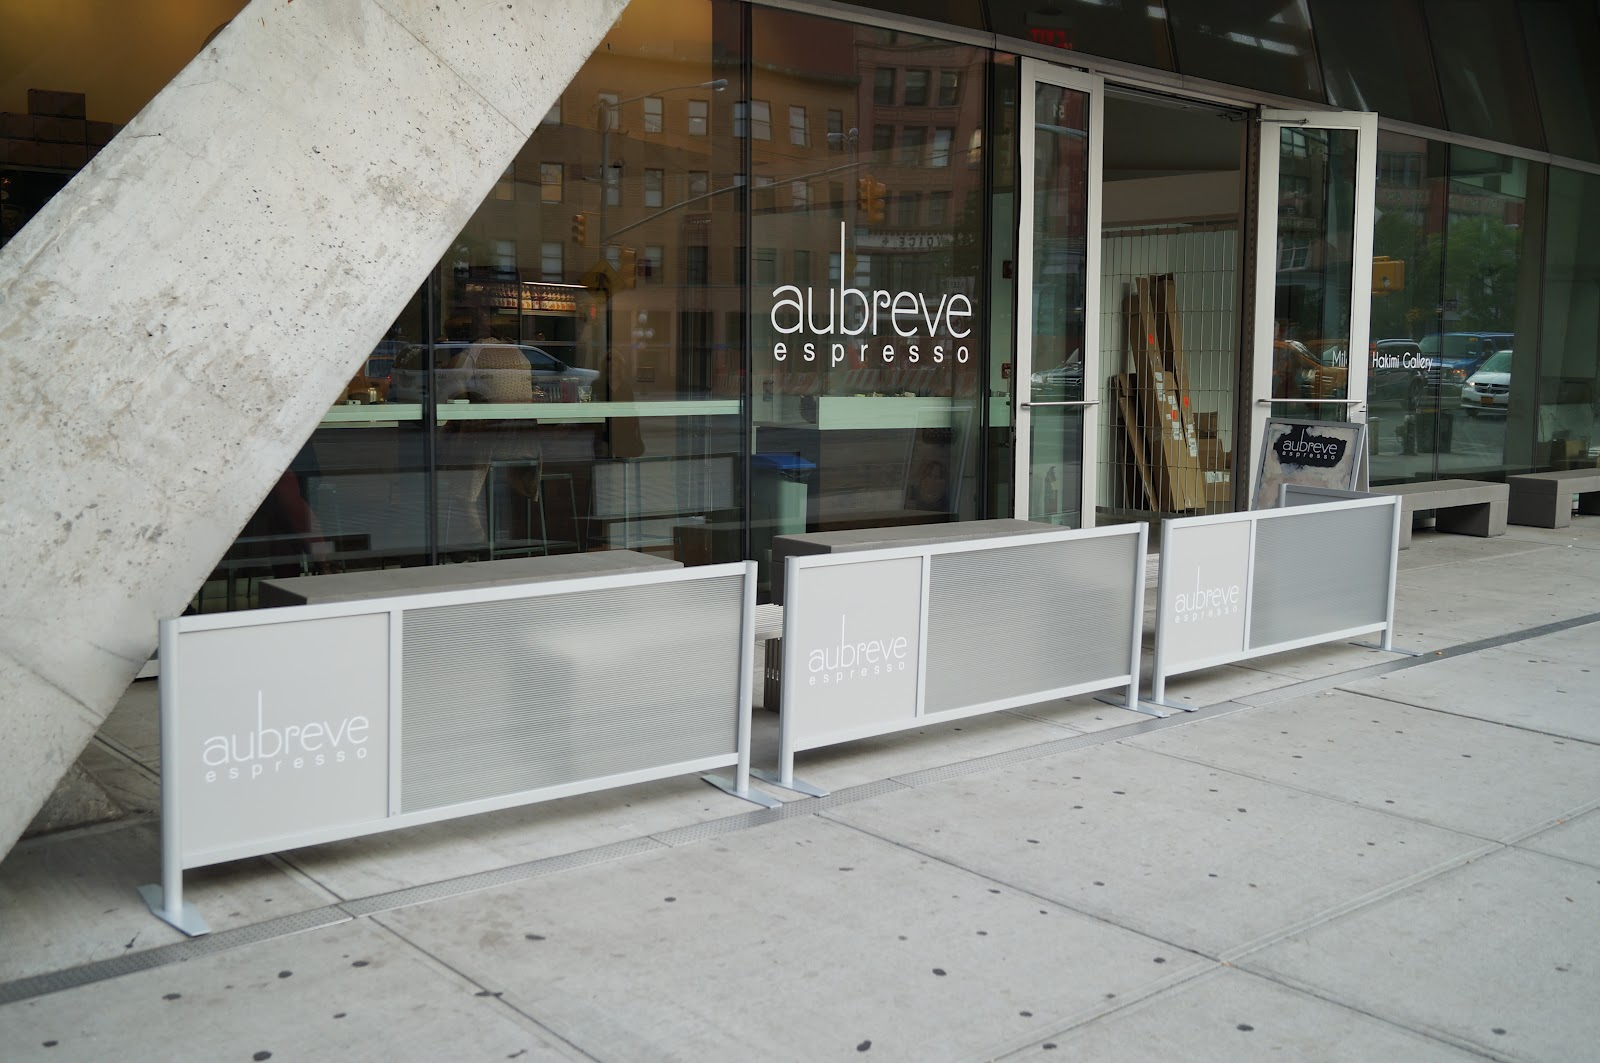 Sidewalk Cafe Barriers, NYC, New York City, Cafe Barriers, Restaurant  Barriers,